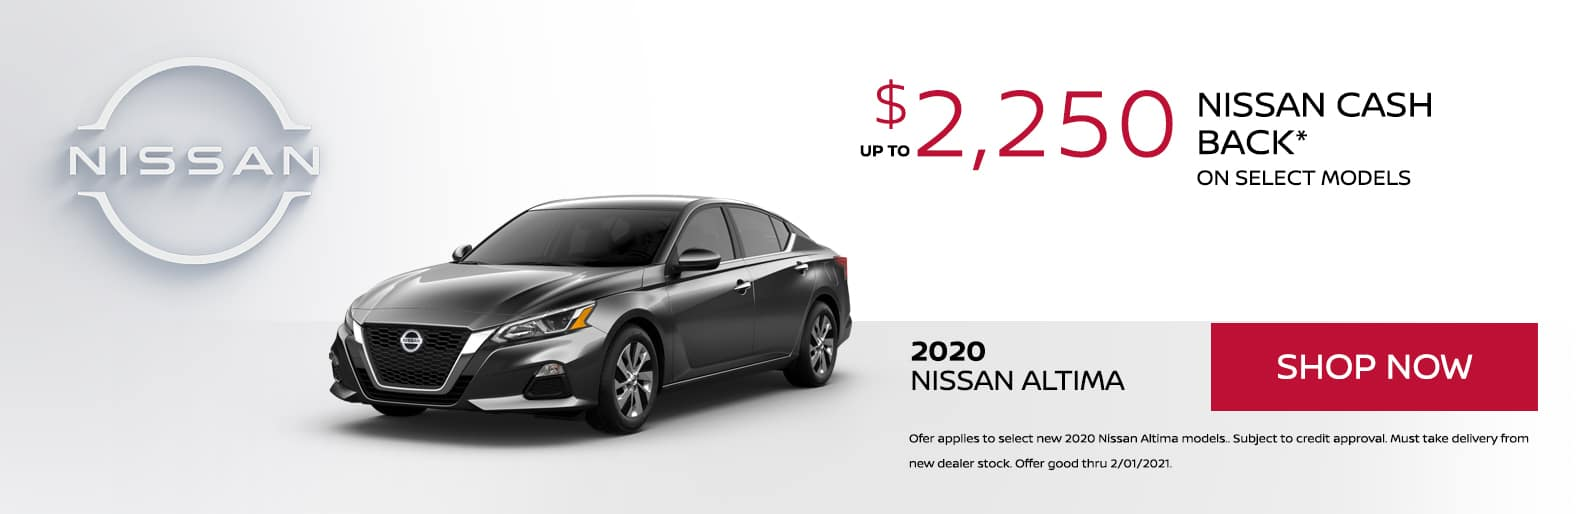 up to $2,250 Nissan Cash Back on MY20 Nissan Altima